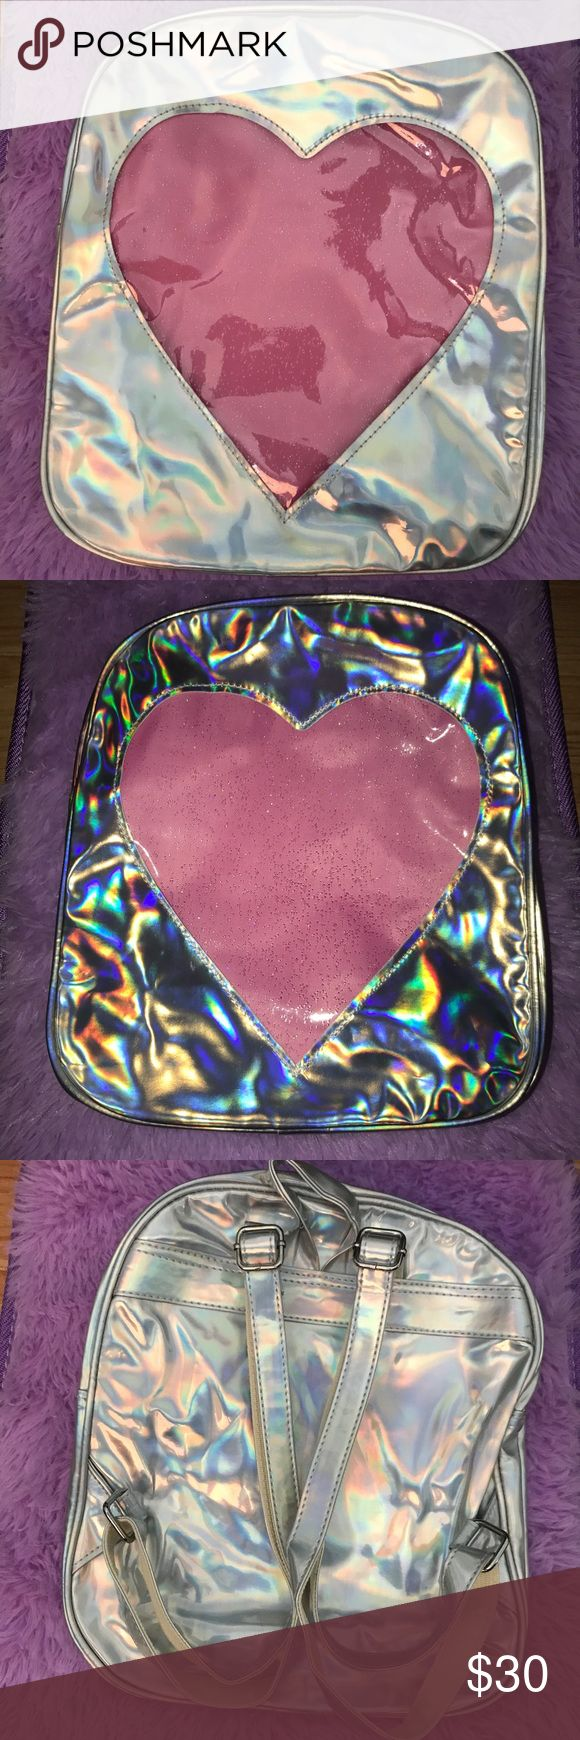 Holographic Heart Backpack Brand new in original packaging. Holographic Transparent Heart Glitter Backpack. Material is faux leather. Not unif. The transparent window shows whatever you put in that area, not everything in the backpack. Very roomy. Can fit lots of water bottles, clothes, notebooks.  Tags: festival, rave, ravewear, Coachella, beyond wonderland, ultra, insomniac, dreamstate, dollskill, little black diamond, j valentine, iheartraves, edc UNIF Bags Backpacks